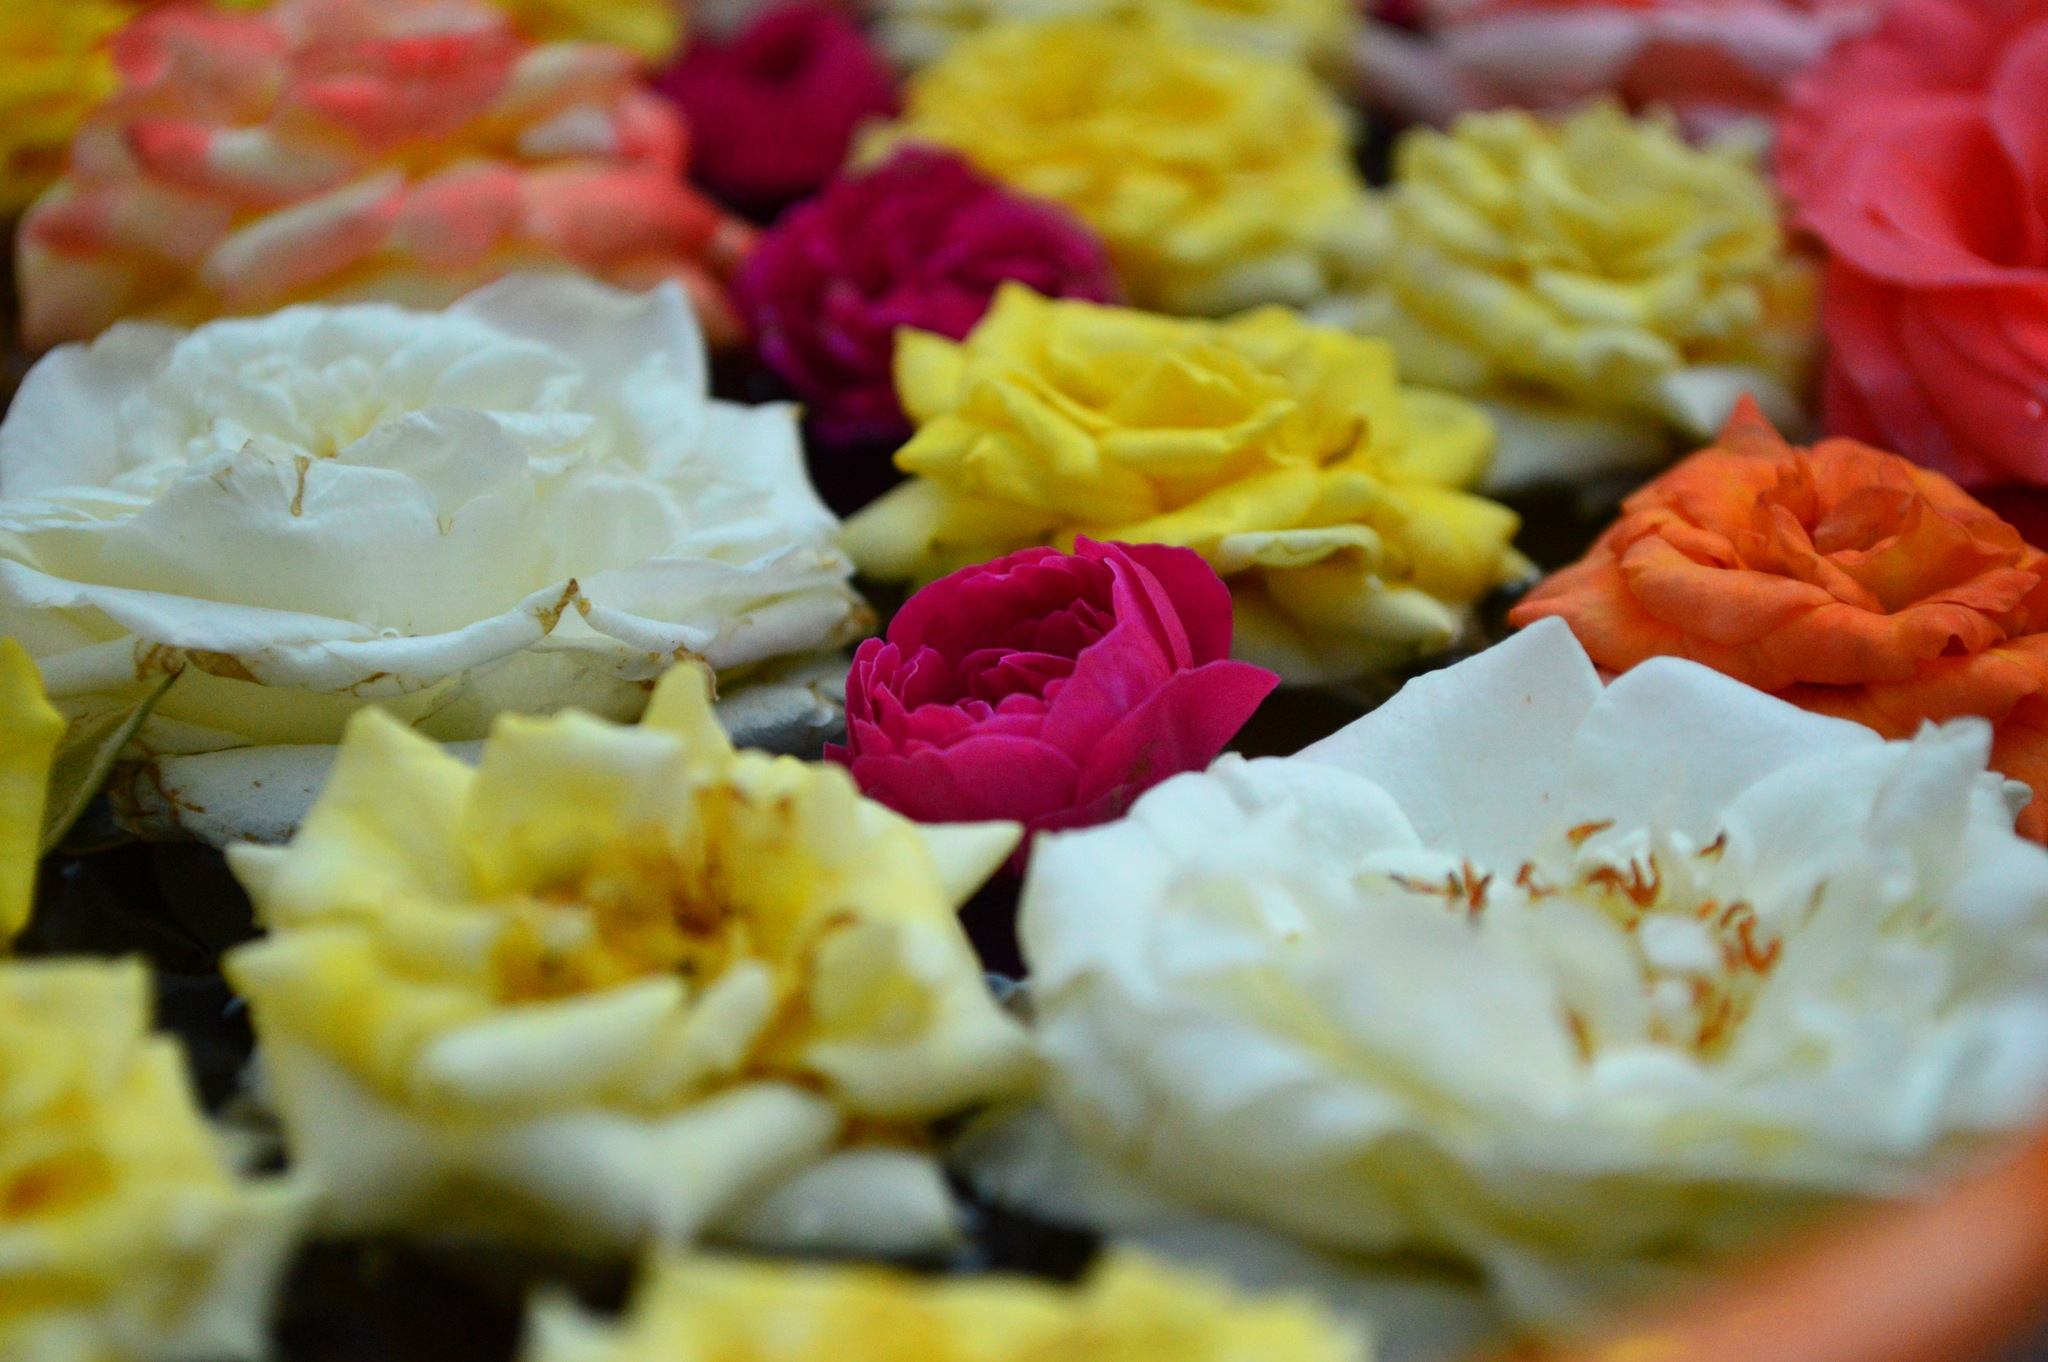 Flowers are the sweetest things God ever made and forgot to put a soul into - Henry Ward Beecher by Ramkumar Narayanan